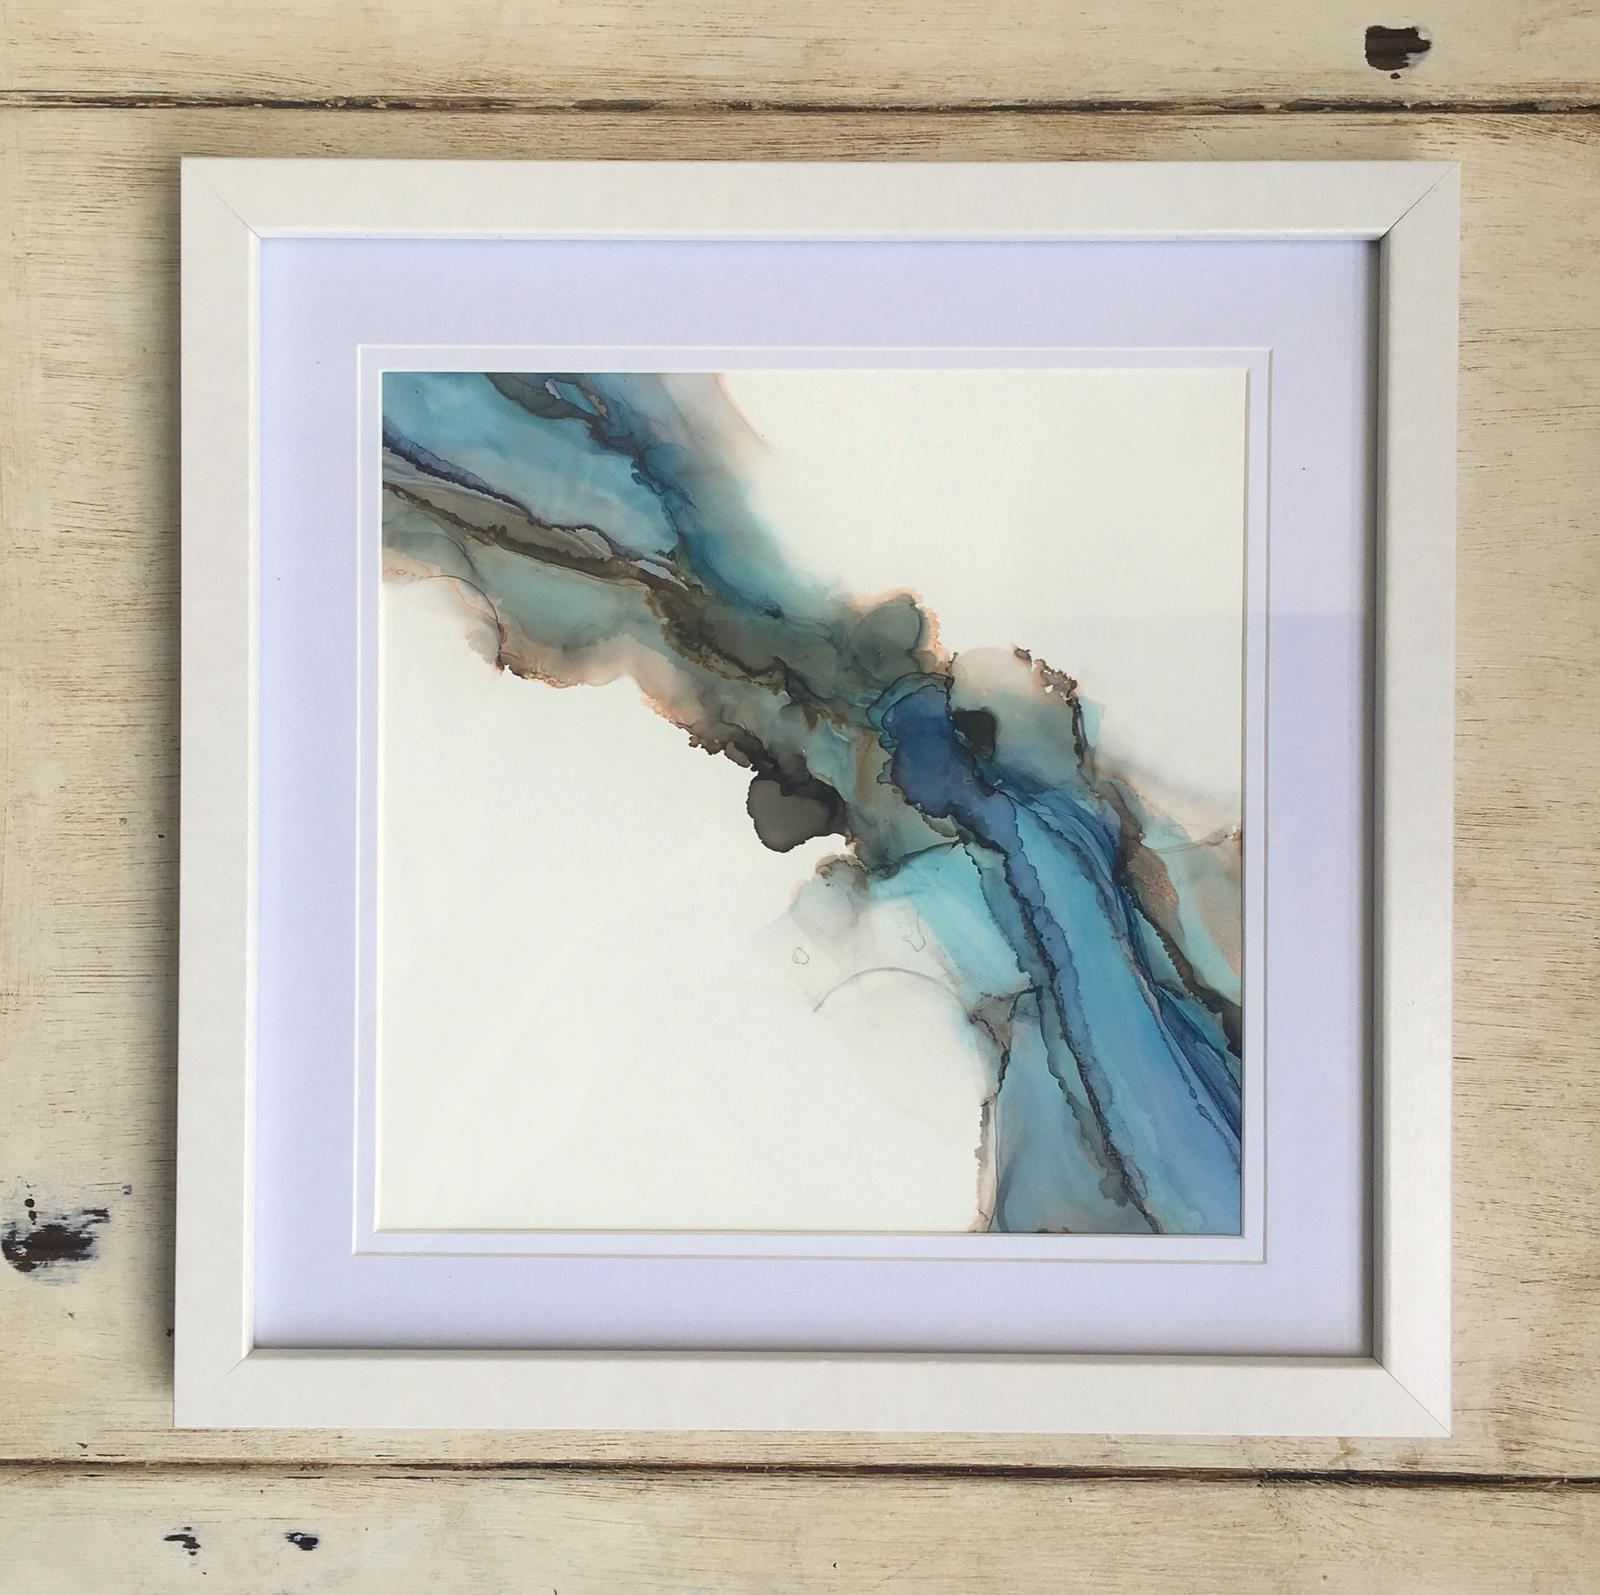 Framed Original - Alcohol Ink